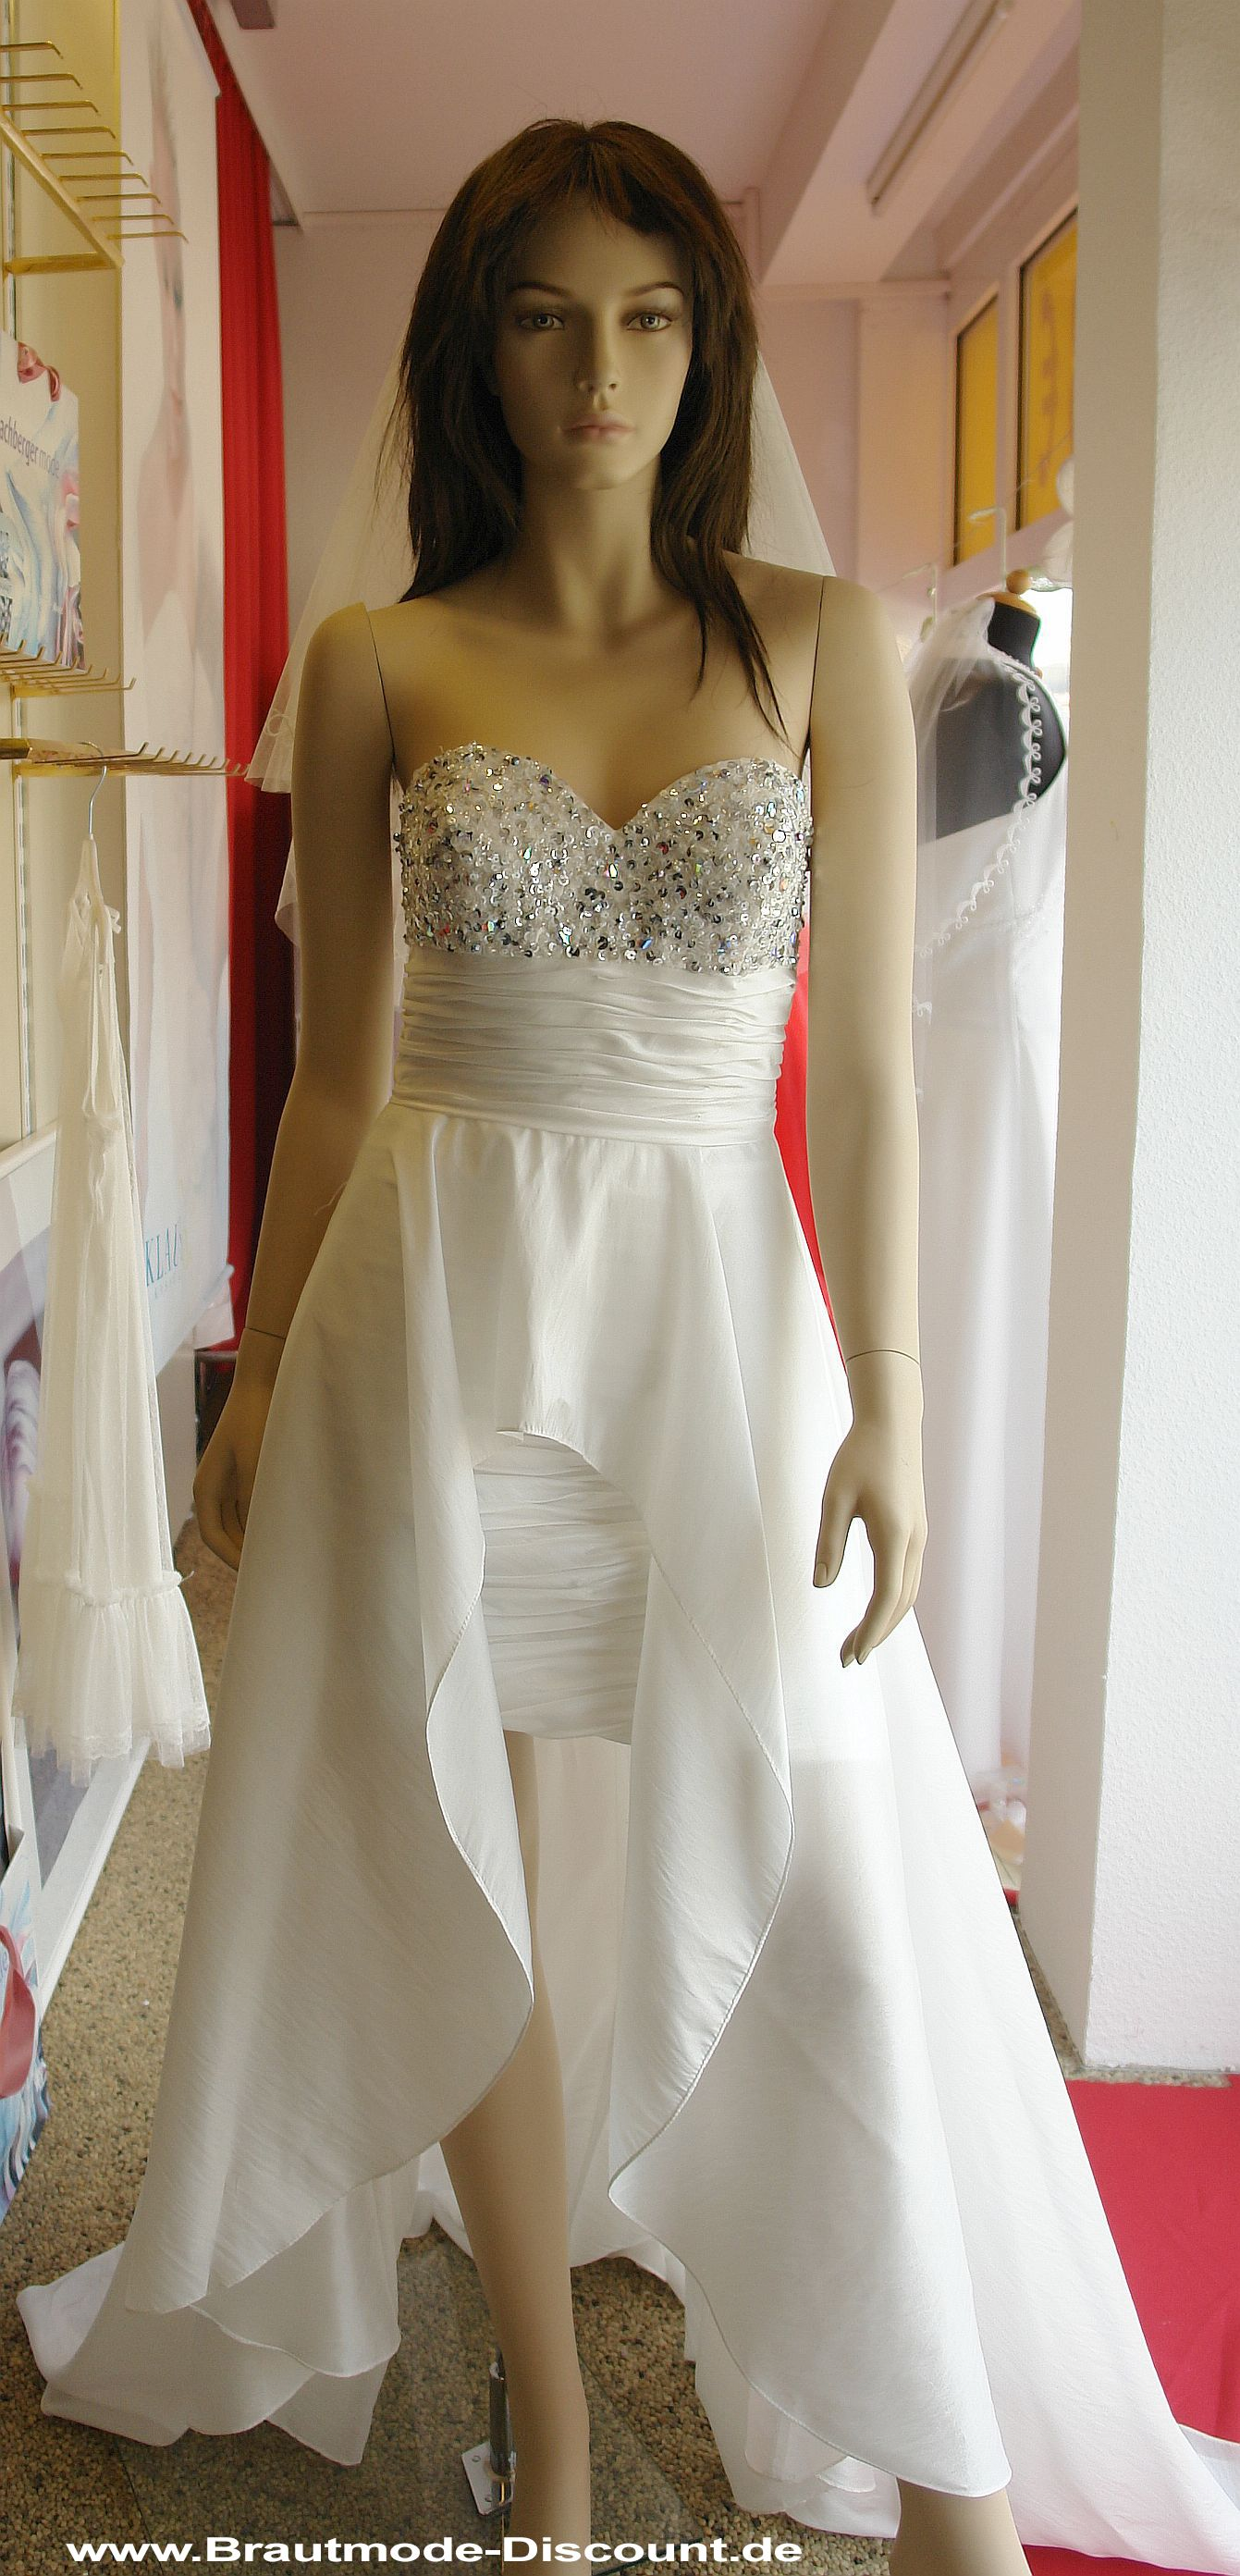 Pin by Brautmode-Discount.de Capitain Outlet Brautkleid on ...